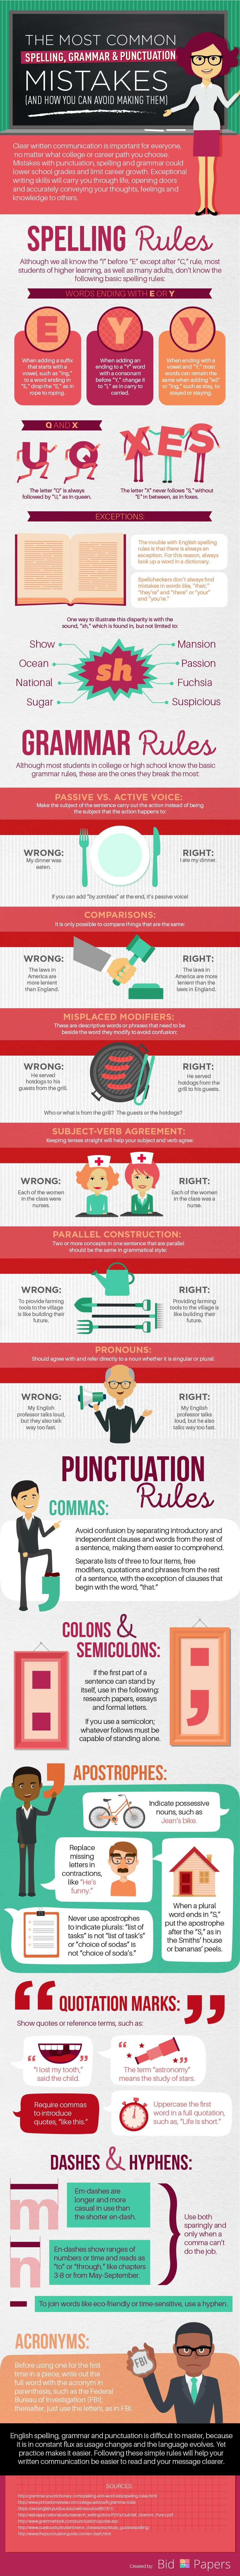 The Most Common Spelling, Grammar & Punctuation Mistakes